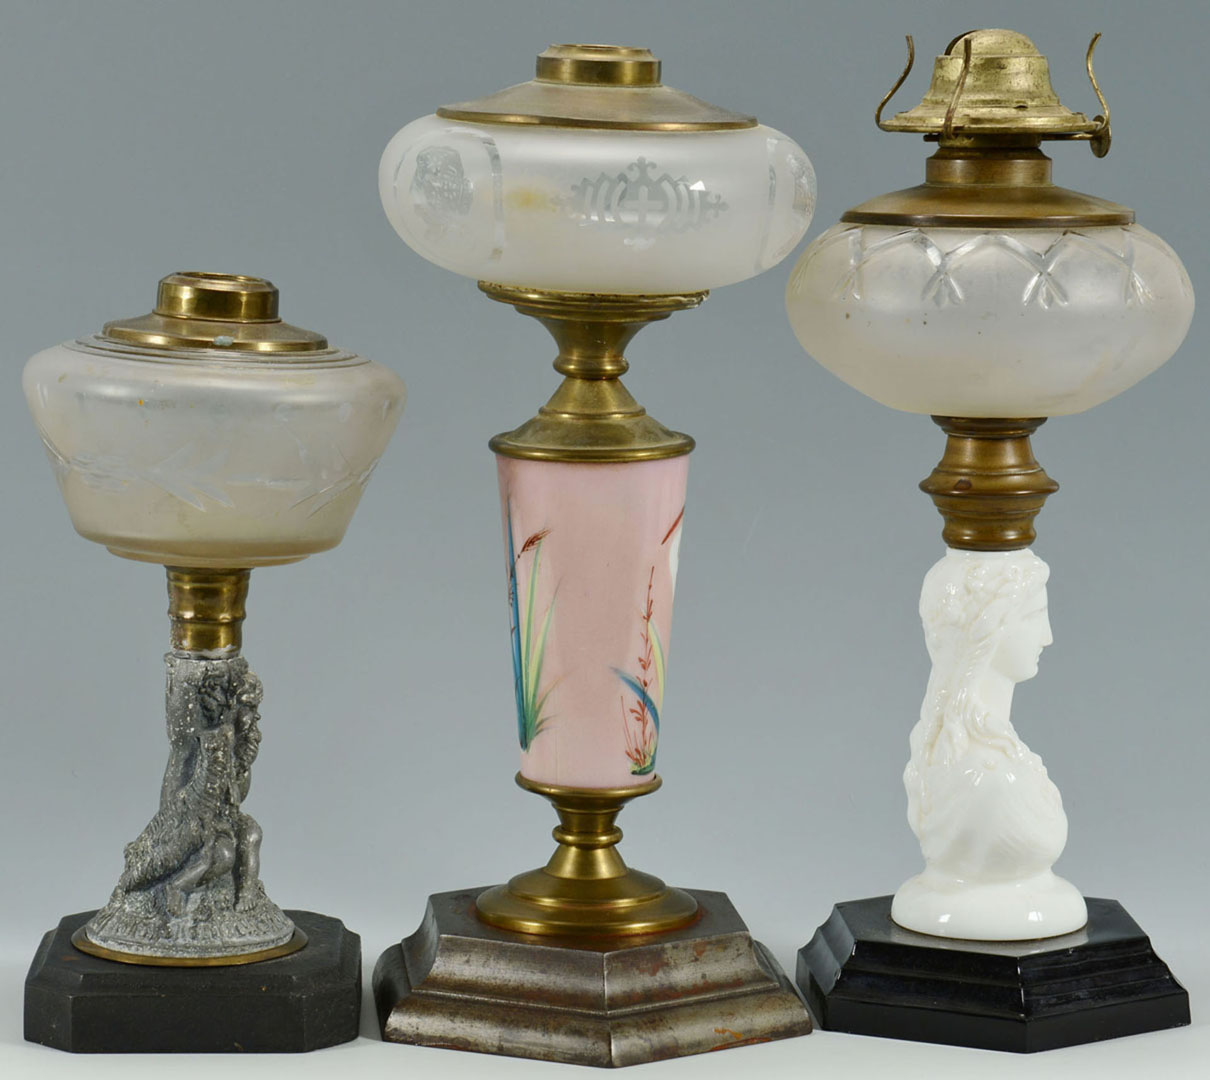 Lot 2872320: 3 Classical Oil Lamps